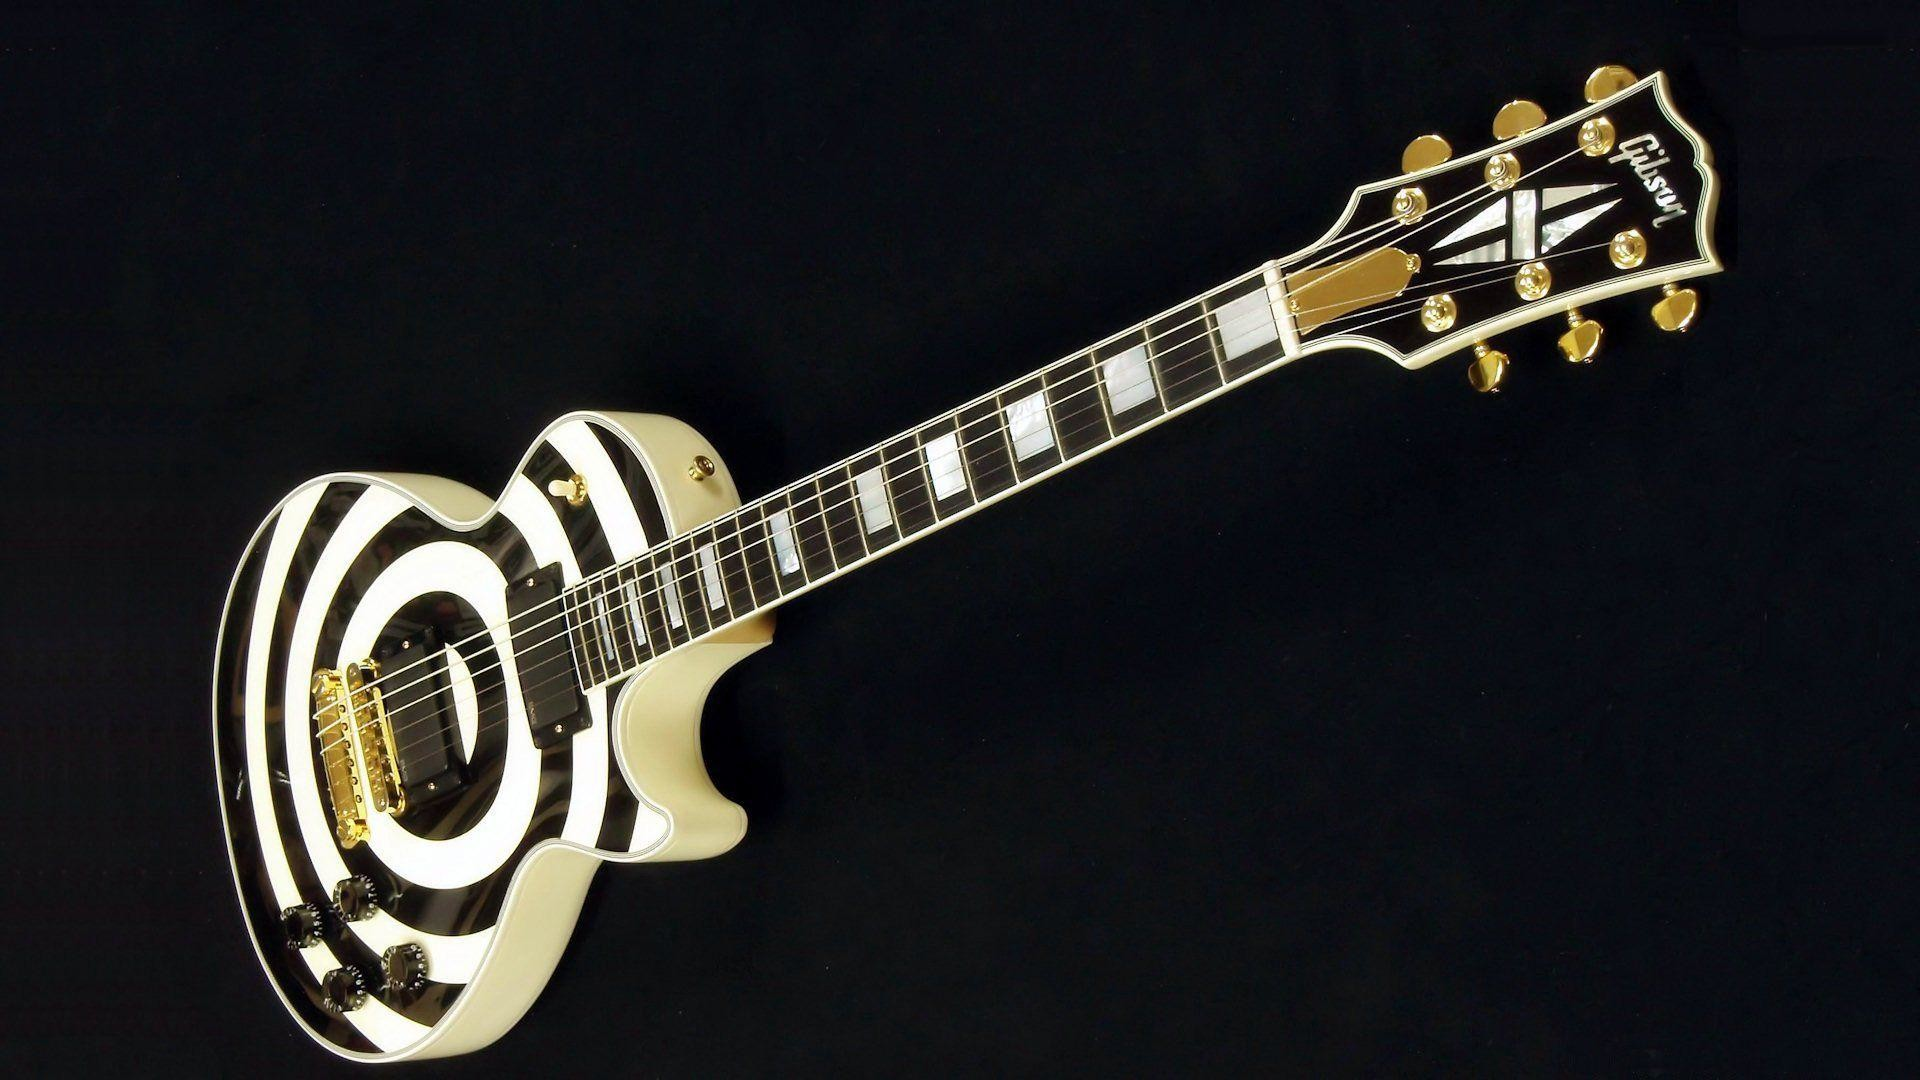 1920x1080 Wallpapers For > Gibson Guitar Iphone Wallpaper